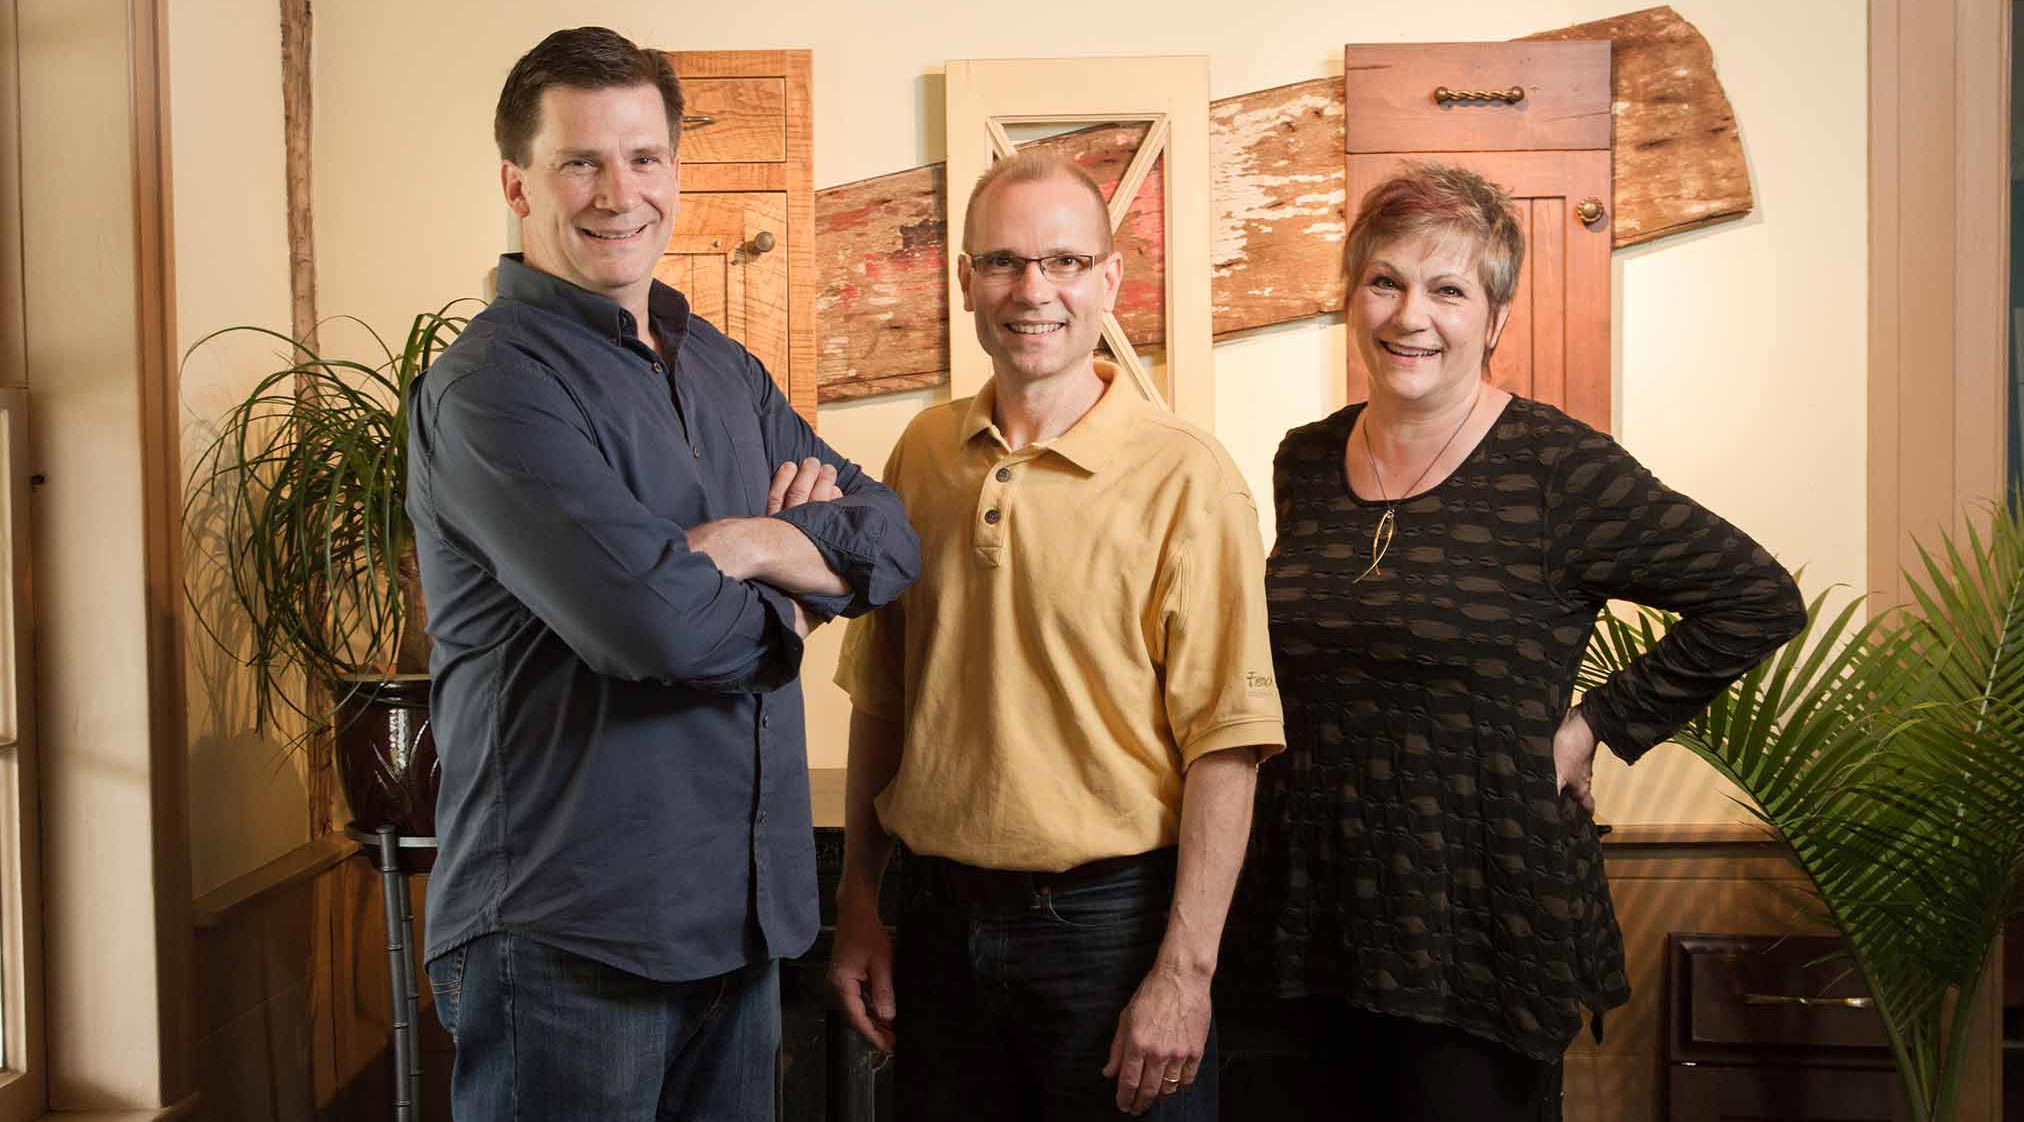 The French Creek Cabinetry & Design Team